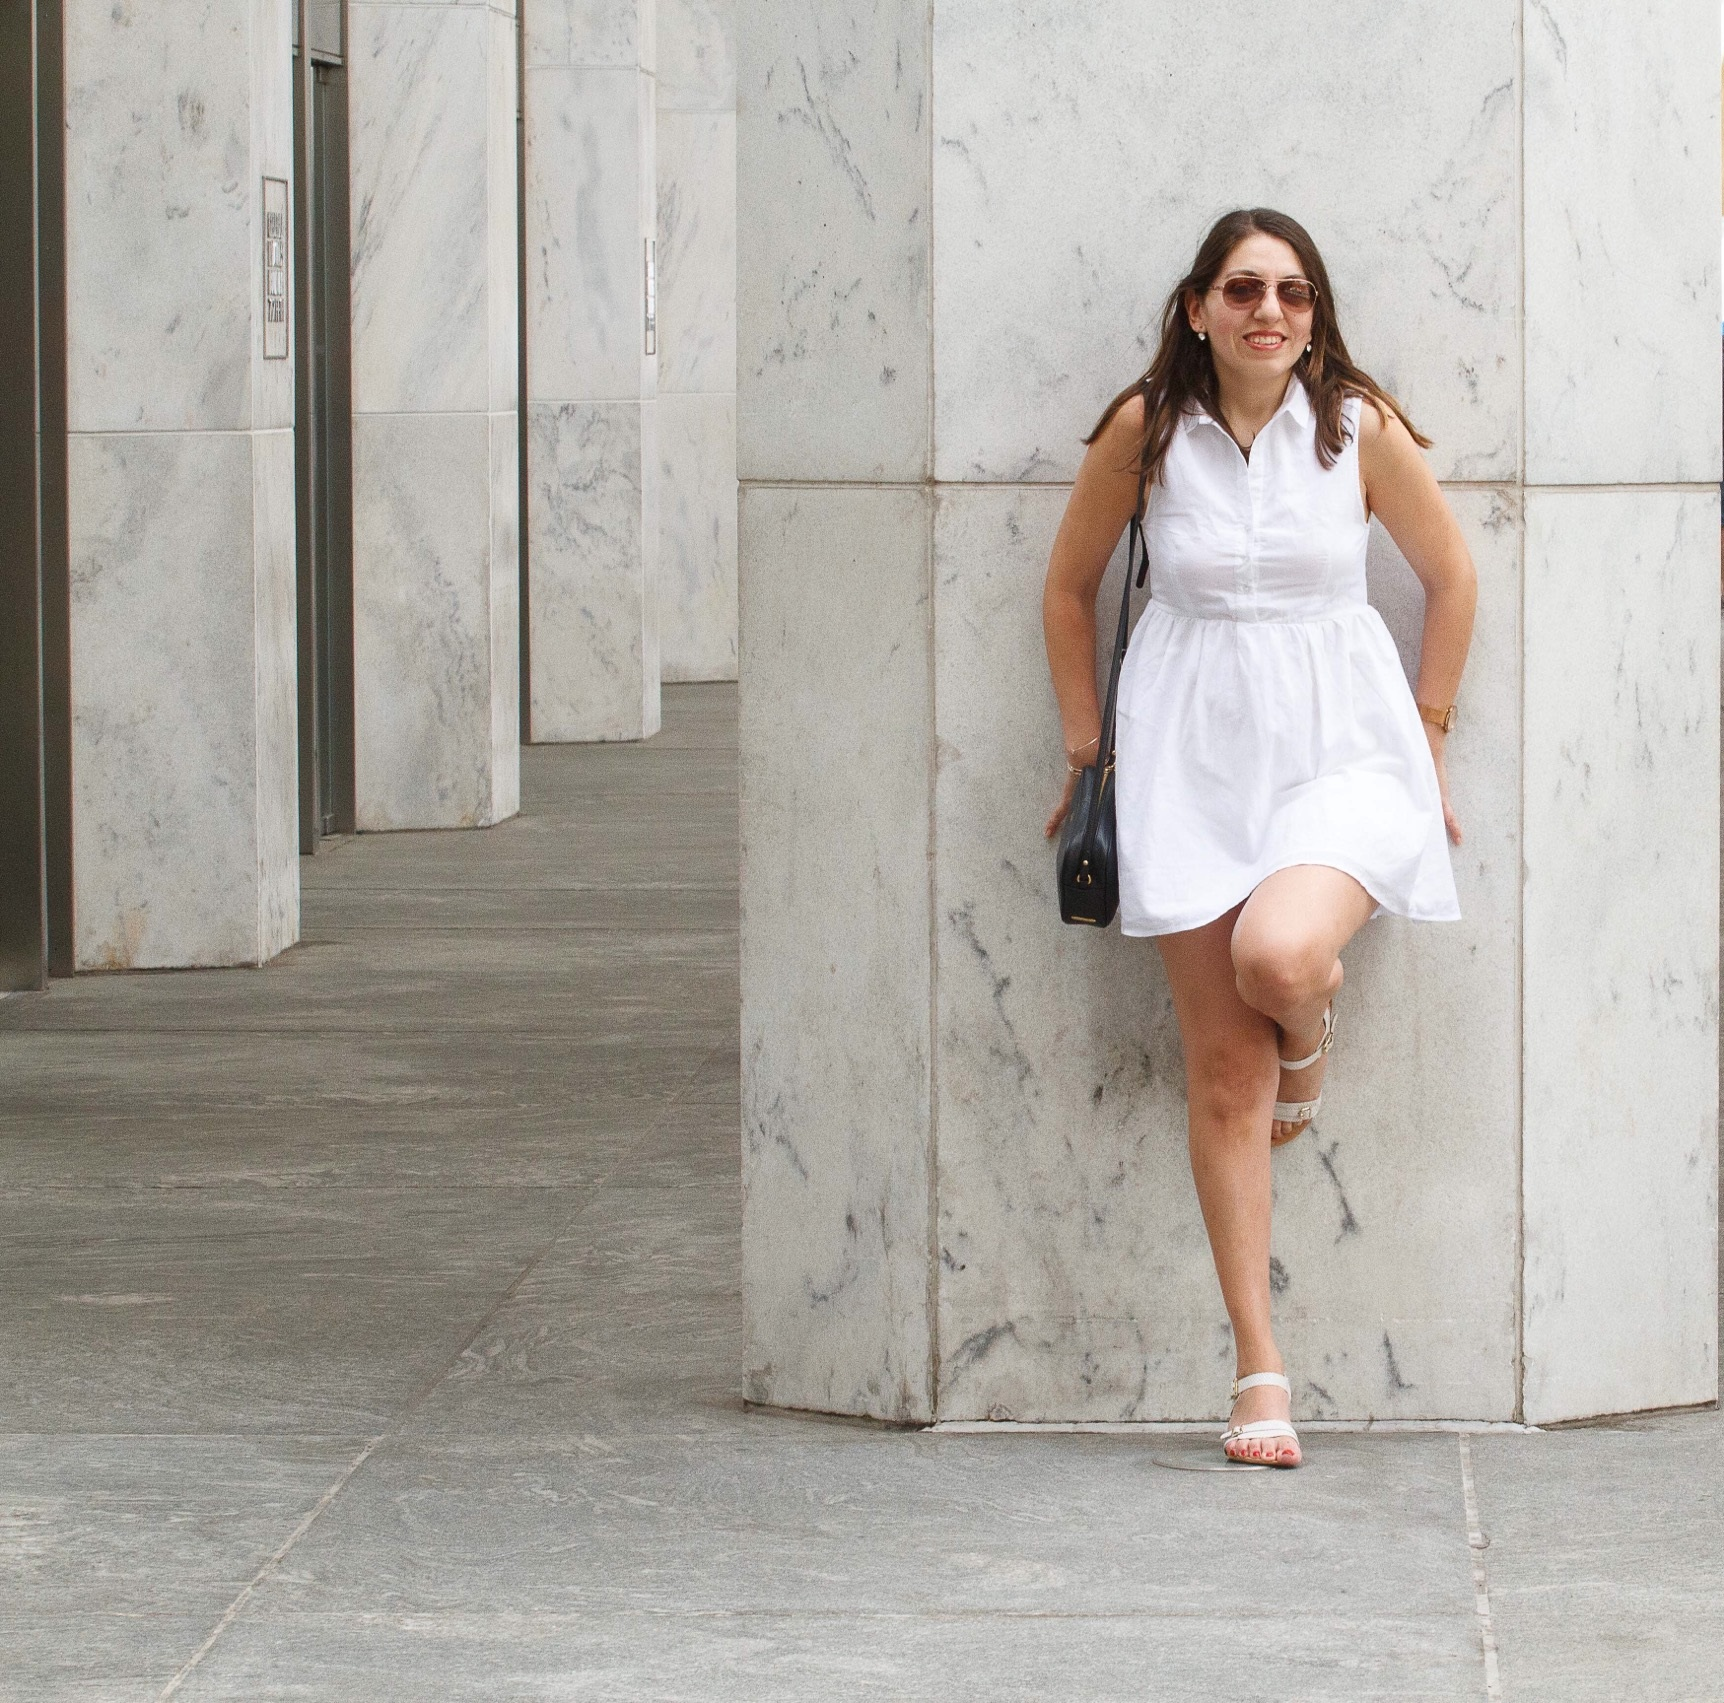 c5e685c8e03 Bring on summer with stylish white outfits - CityChick Style